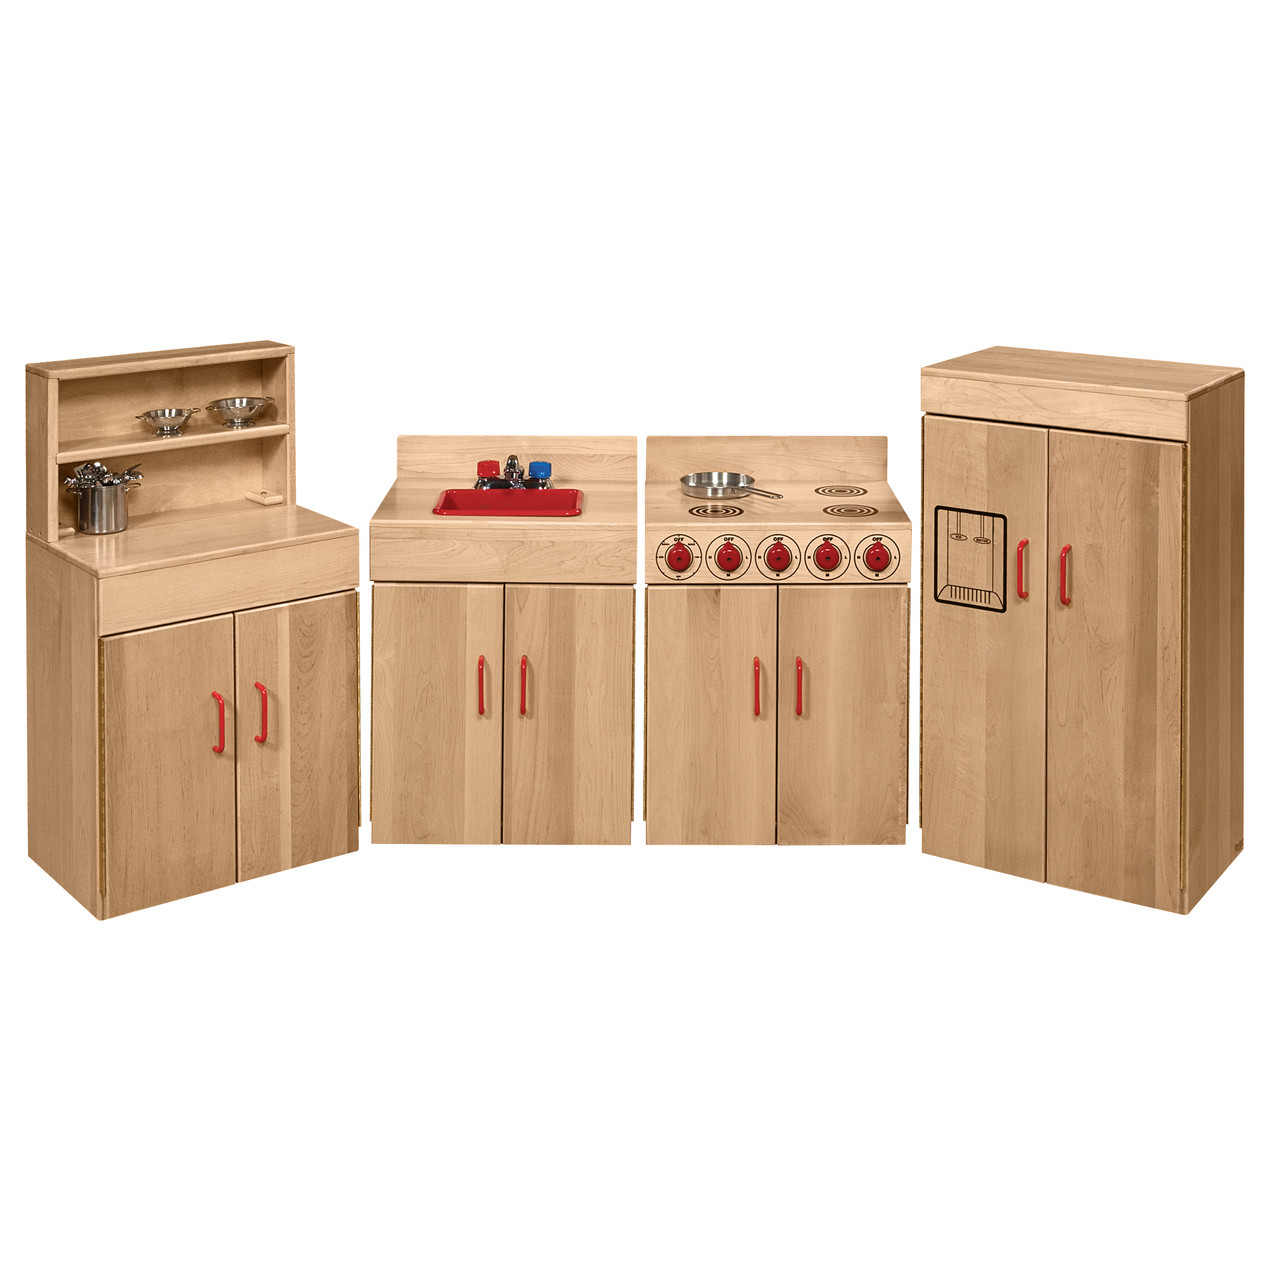 Wood Designs Heritage Maple Play Kitchen Set [10020-WDD]